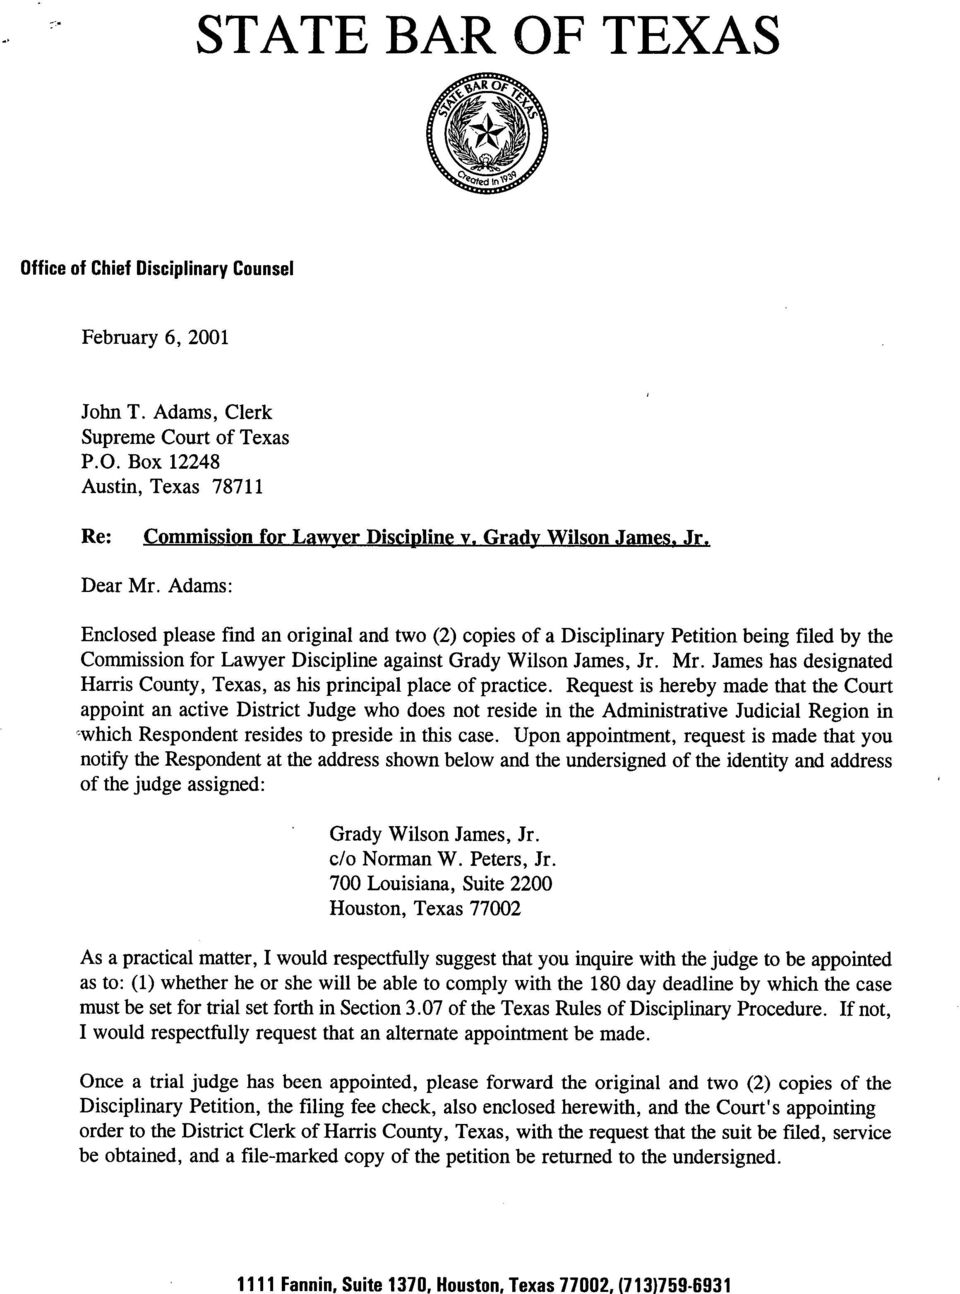 Adams: Enclosed please find an original and two (2) copies of a Disciplinary Petition being filed by the Commission for Lawyer Discipline against Grady Wilson James, Jr. Mr.